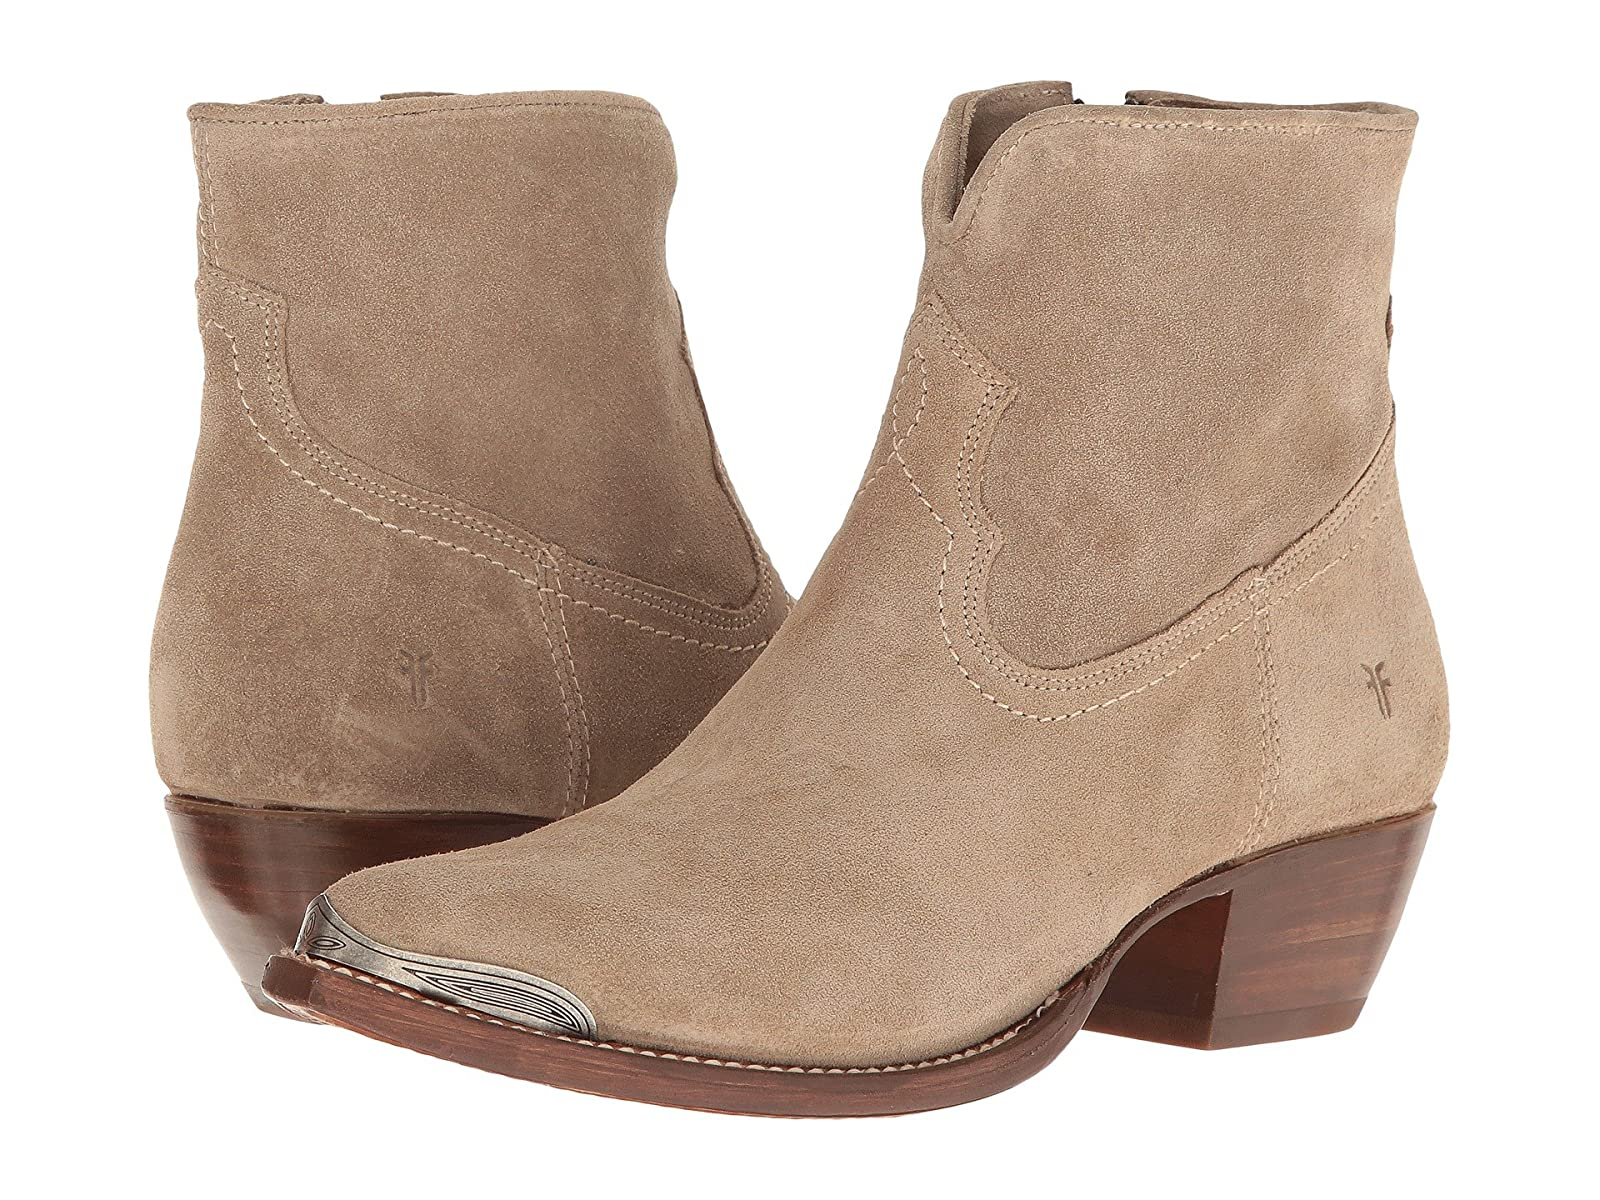 Frye Shane Tip ShortCheap and distinctive eye-catching shoes